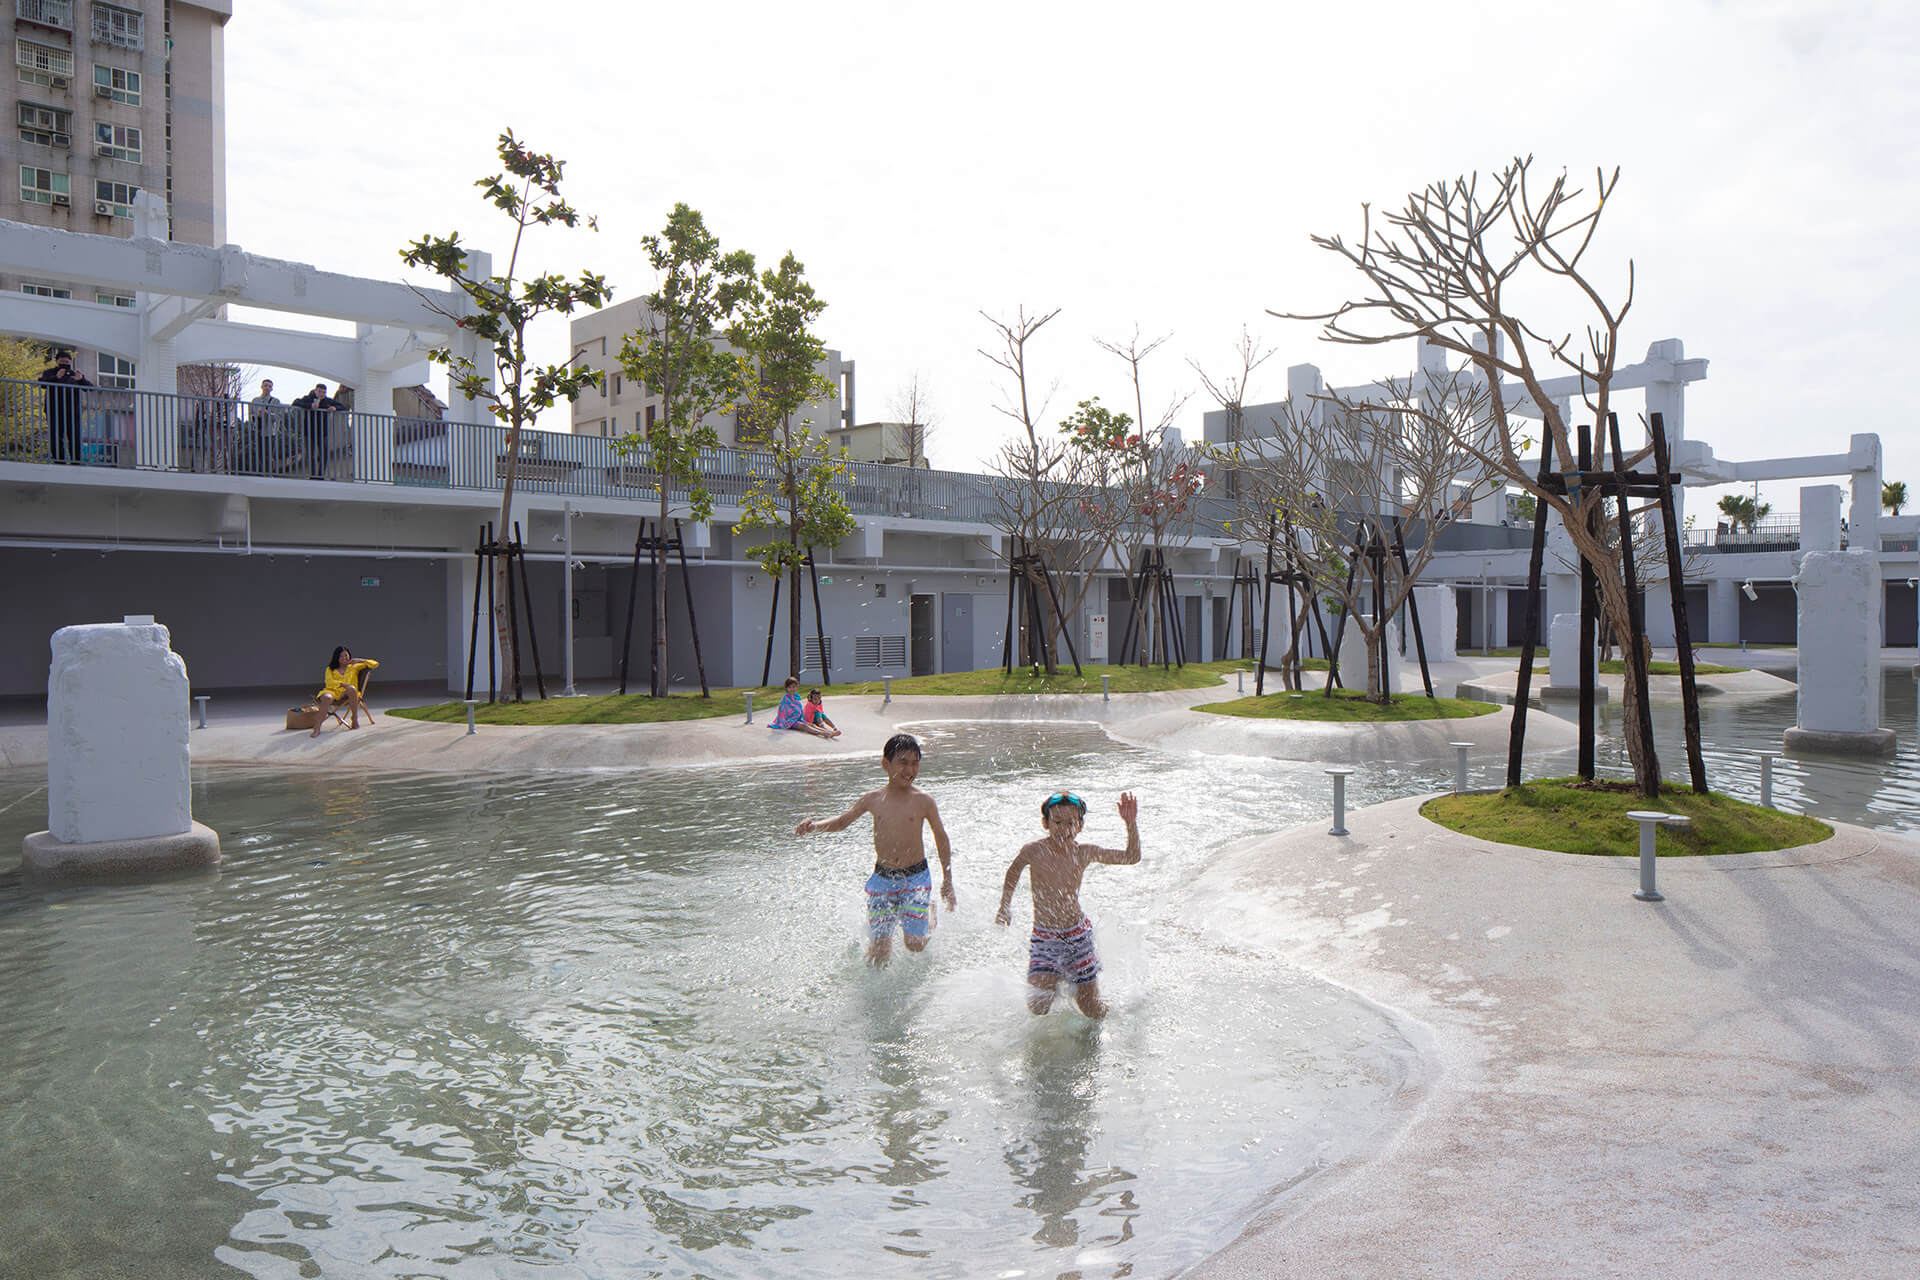 In Tainan Spring, people can bathe in the overgrown remains of a shopping mall | MVRDV's Tainan Spring is an urban lagoon in Tainan, Taiwan | STIRworld